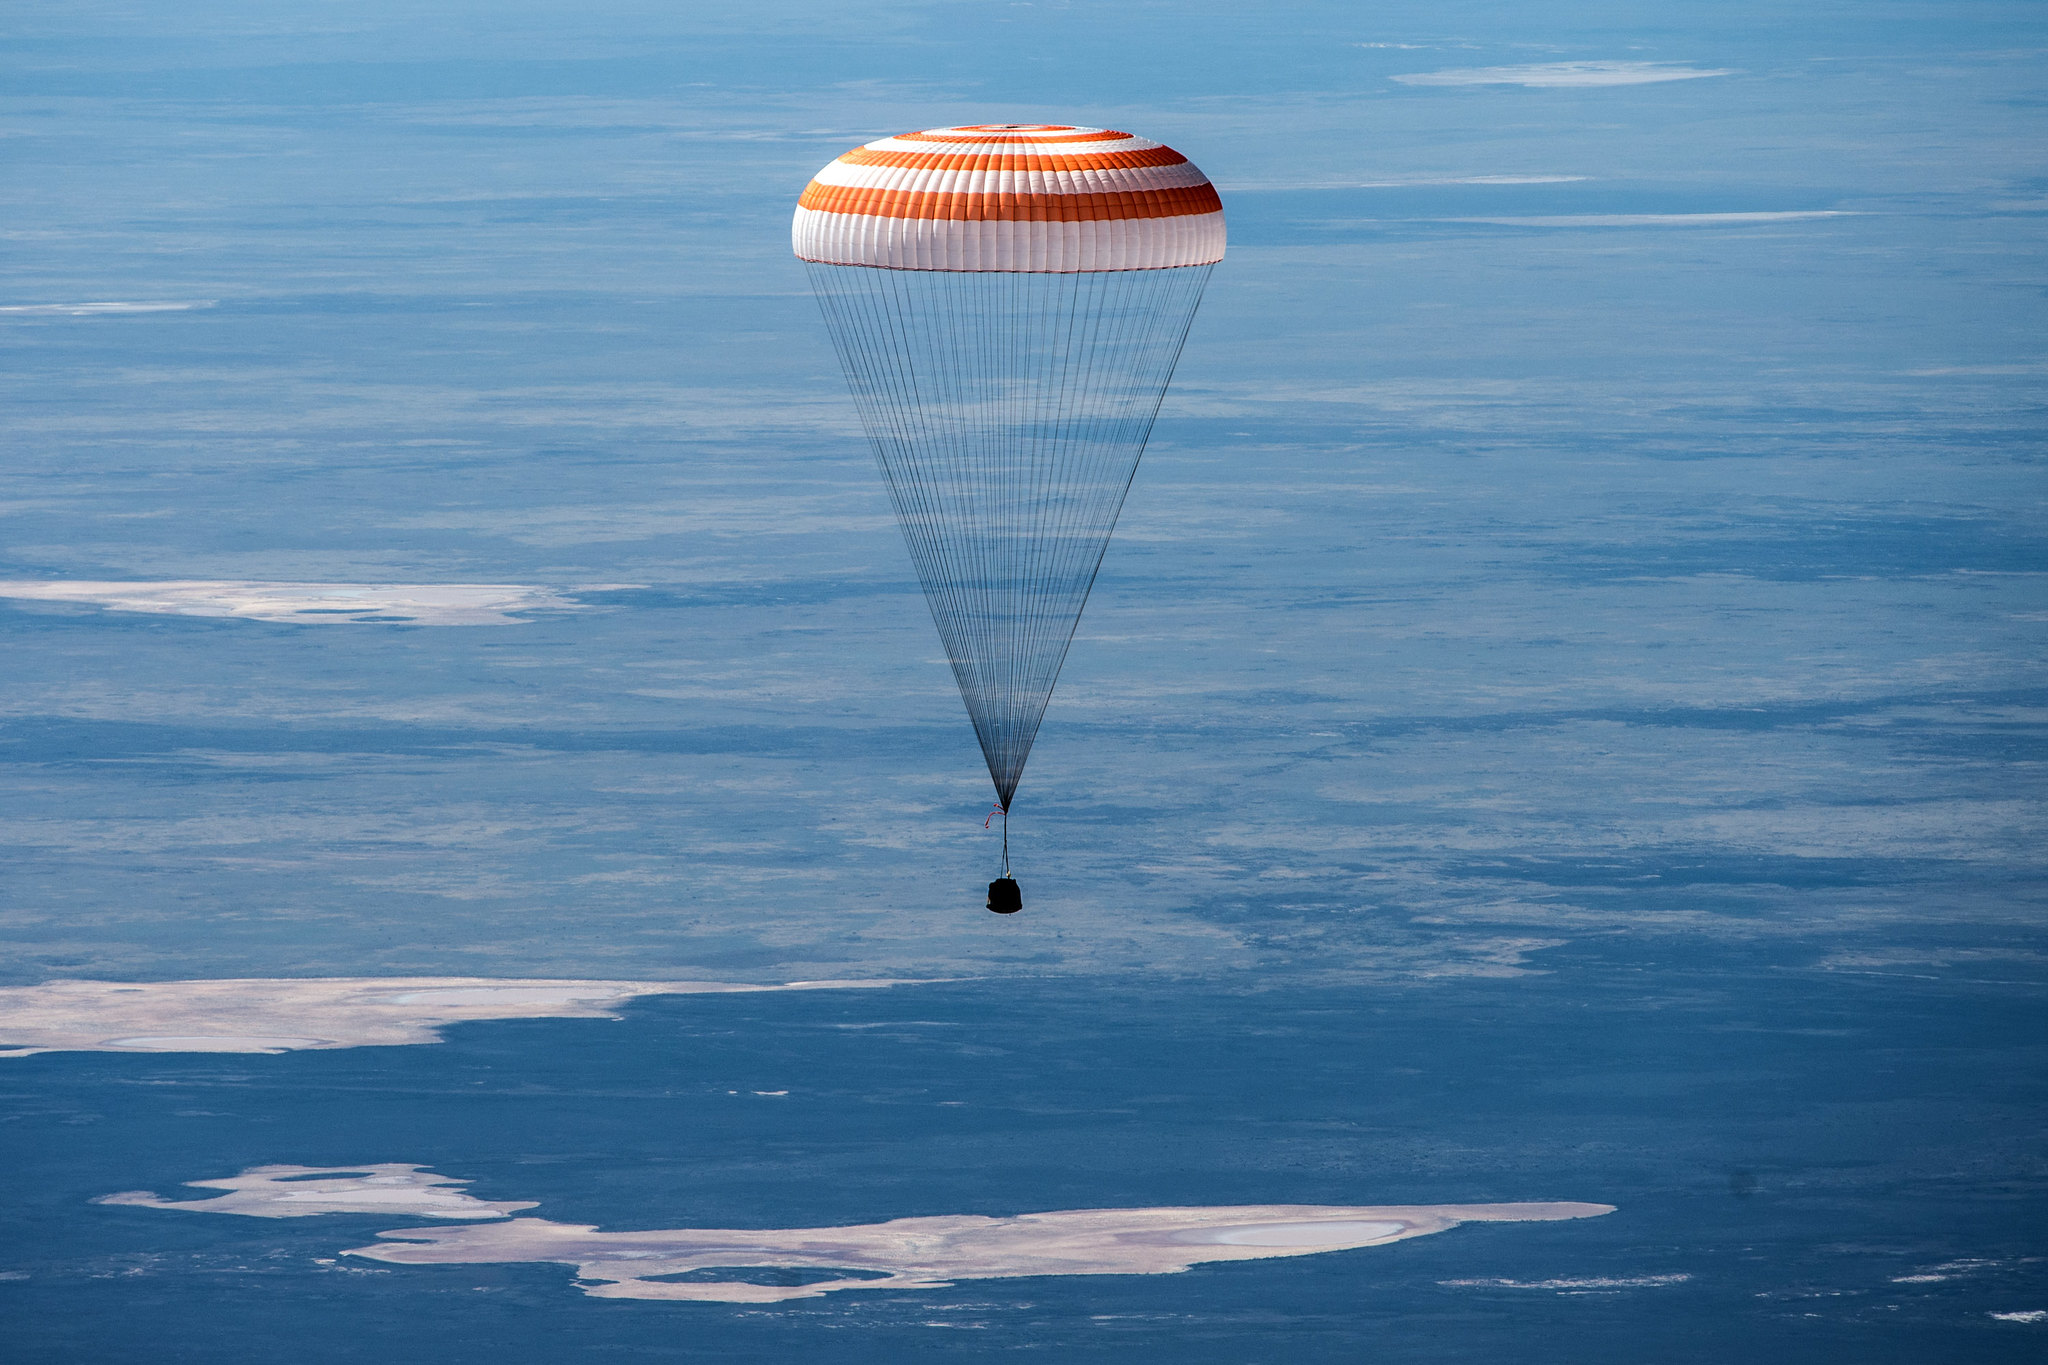 Landing Coverage Set for NASA Astronaut Chris Cassidy, Space Station Crew